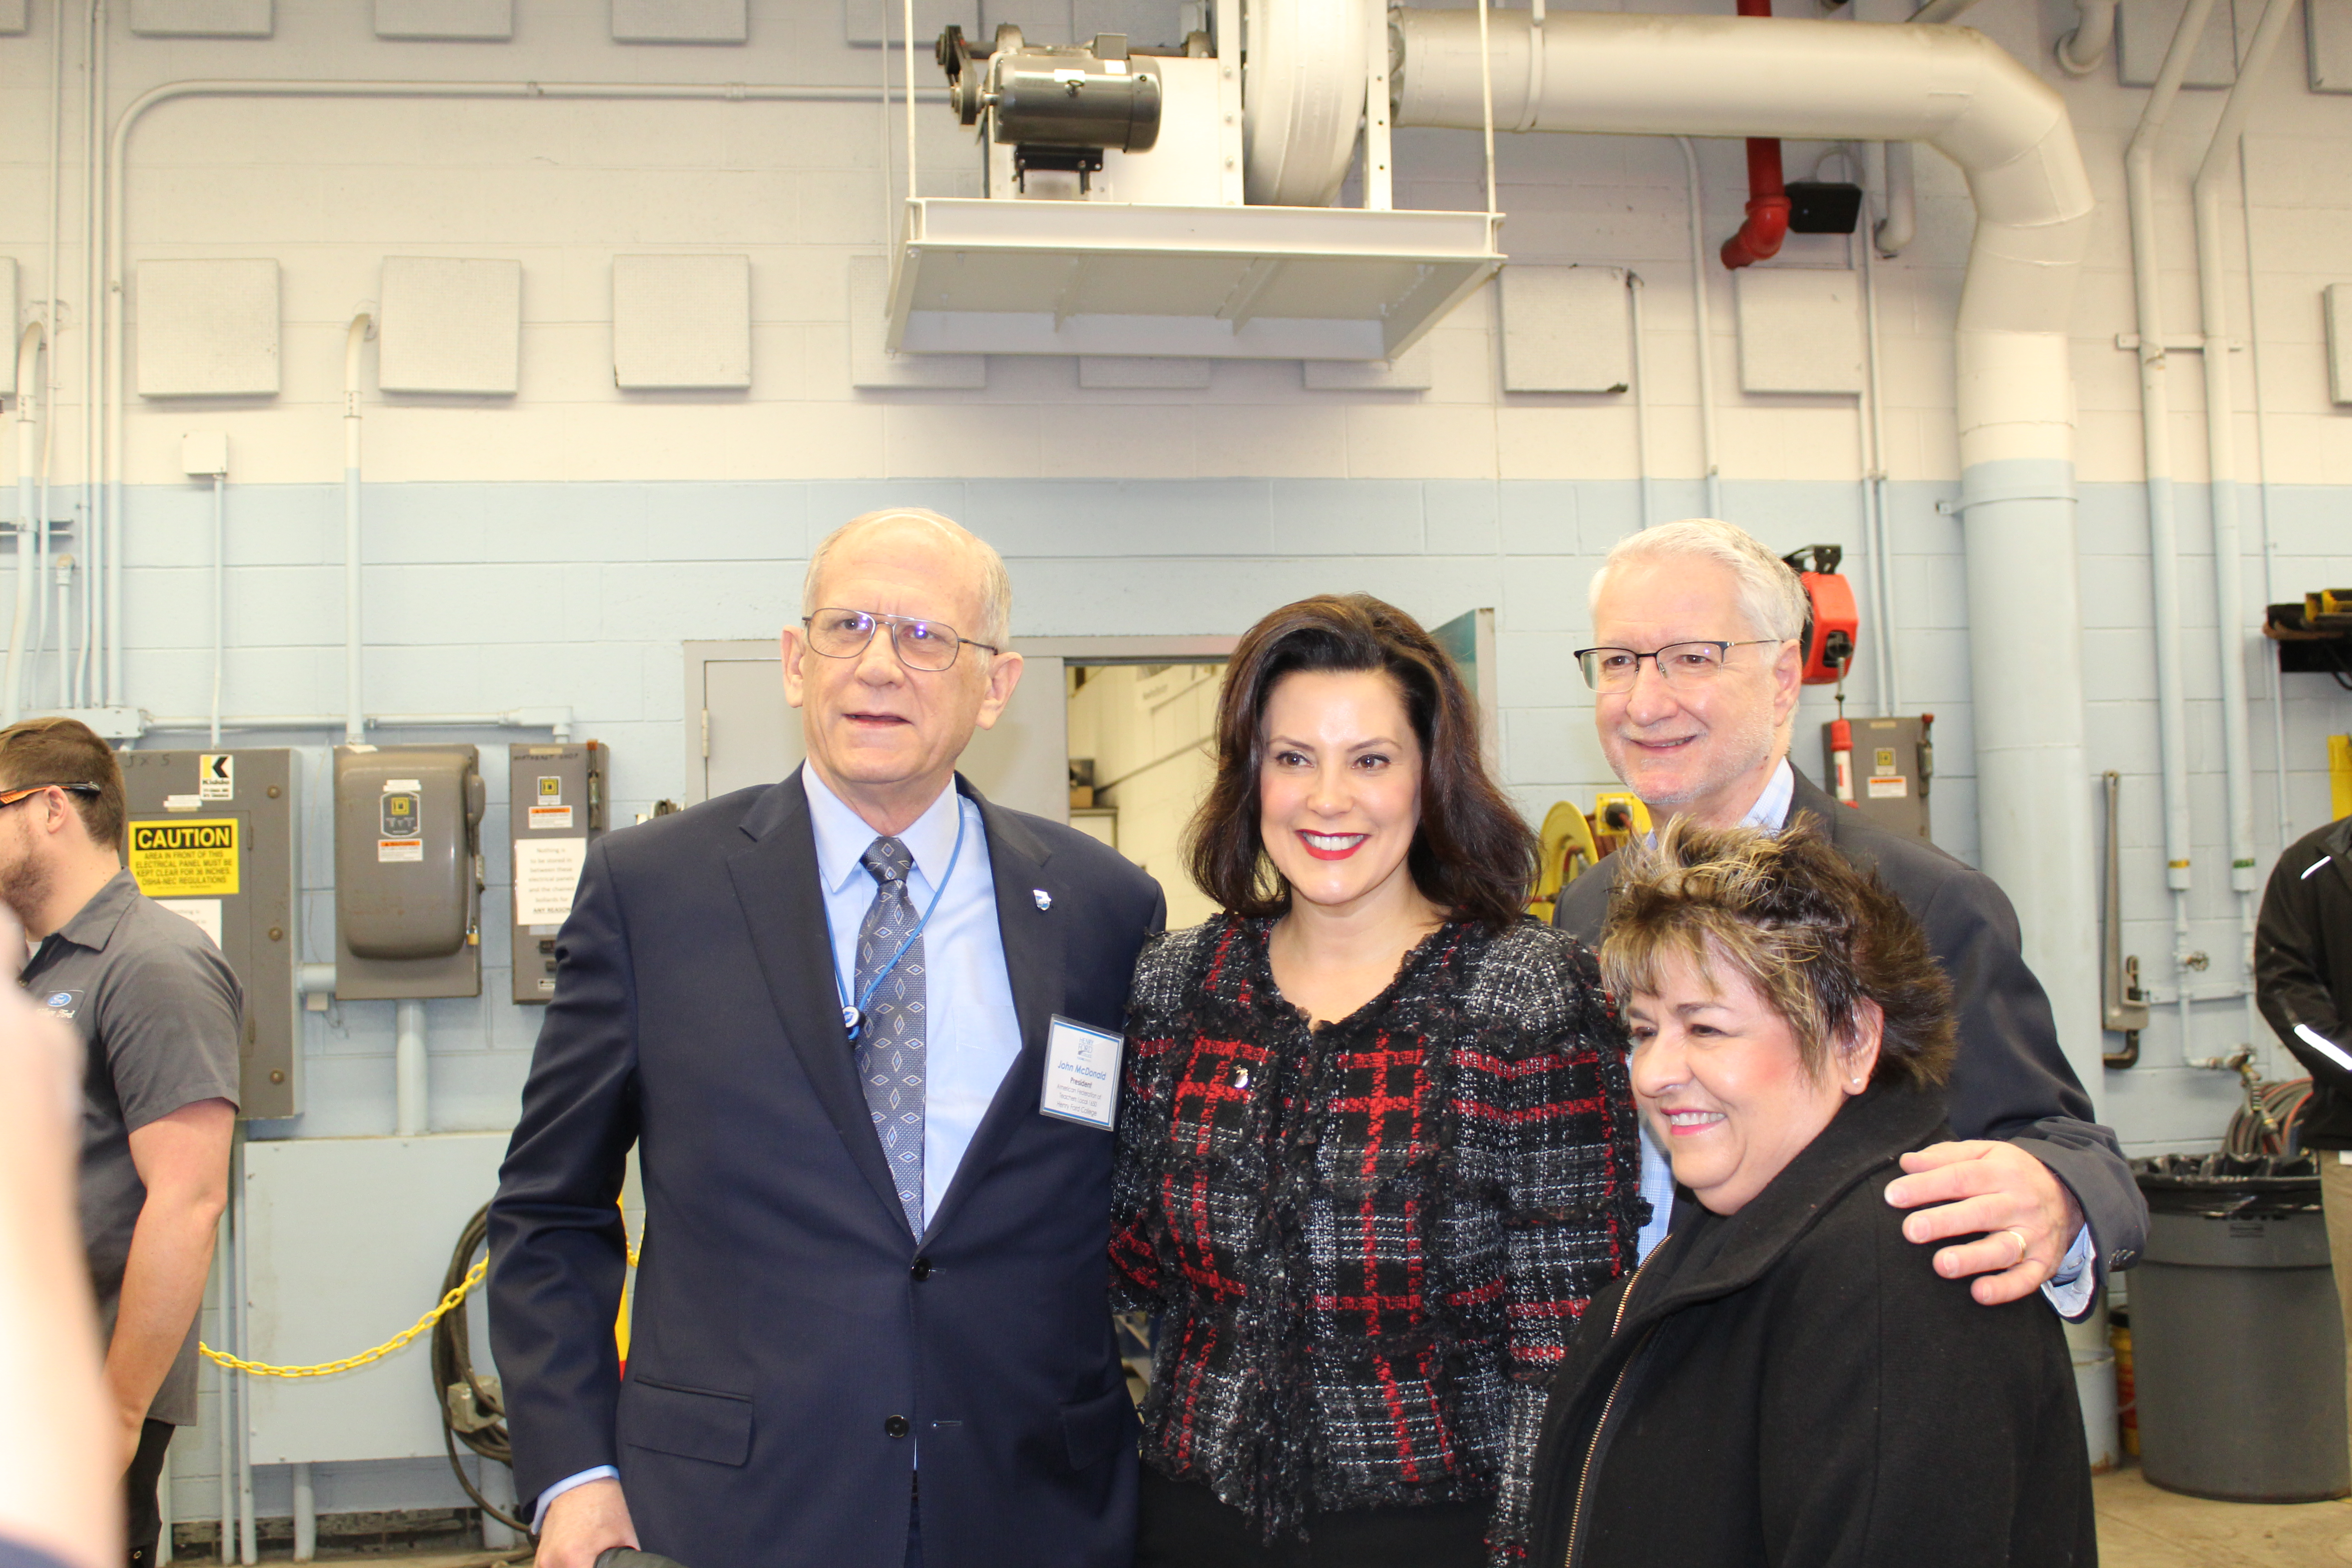 American Federation of Teachers Local 1650 President John MacDonald with Michigan Governor Gretchen Whitmer and two HFC community supporters